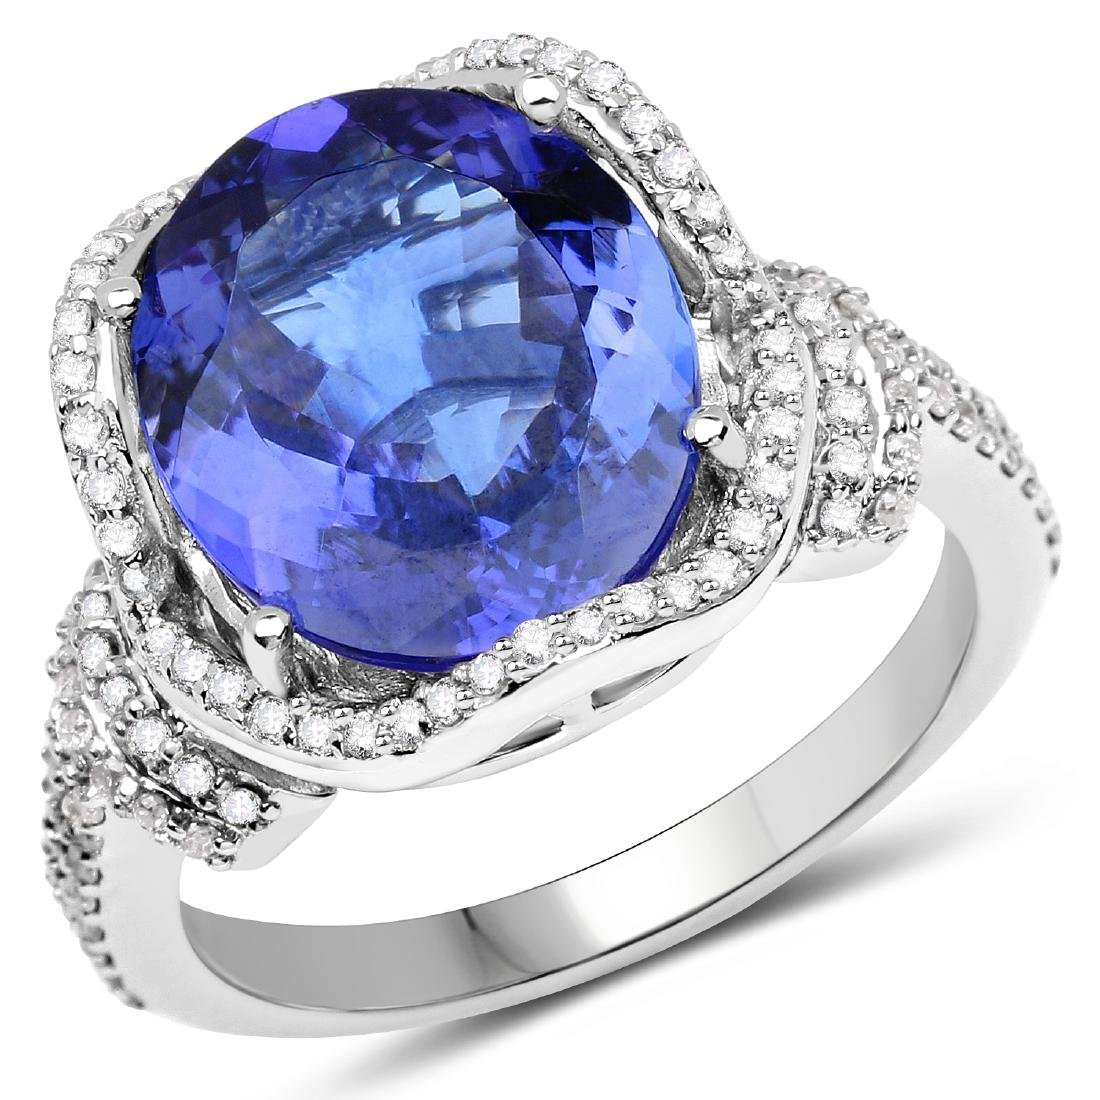 5.37ct Tanzanite 14K White Gold Ring